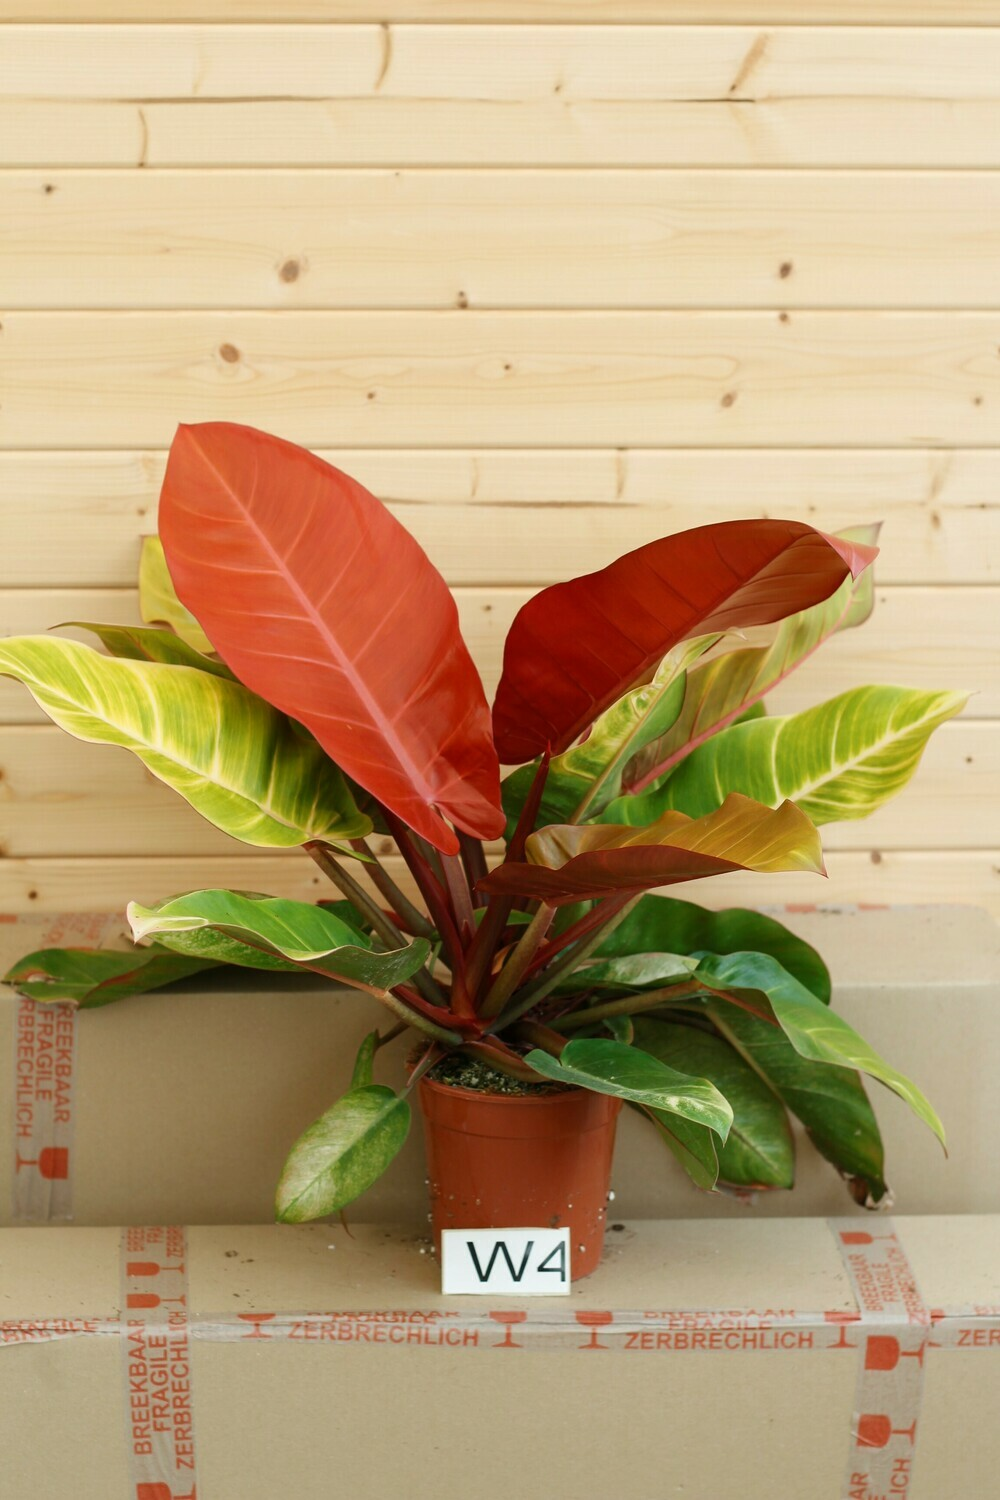 Philodendron 'Prince of Orange' W4  - 2 stems !